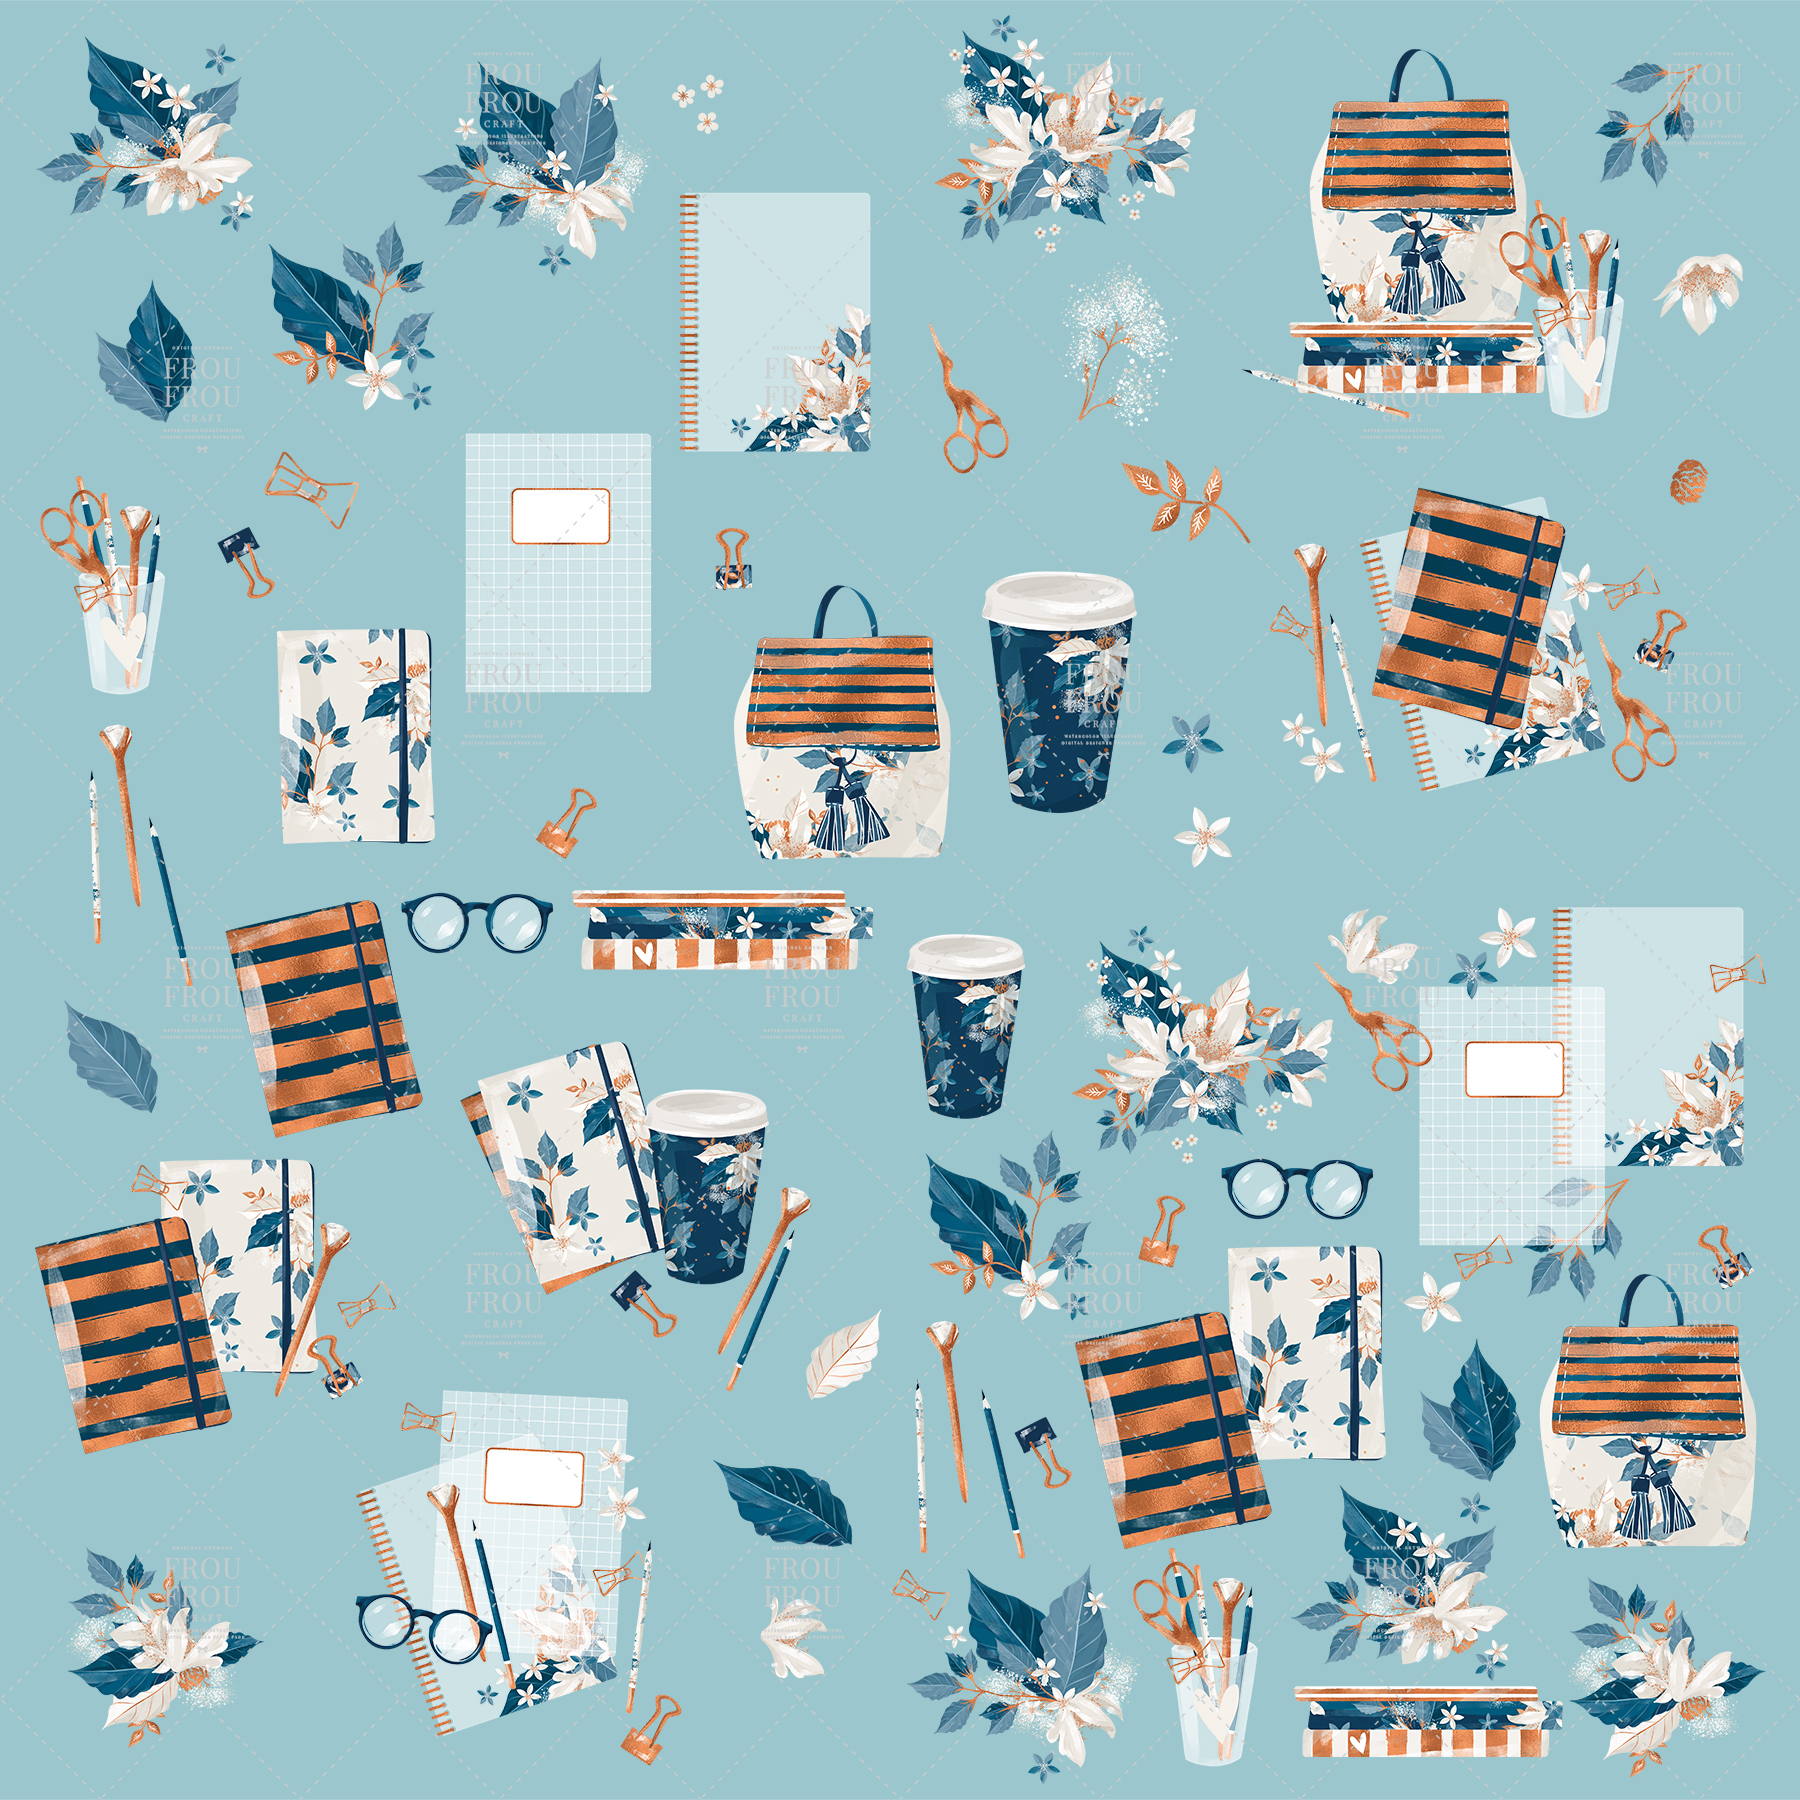 Planner Stationery School Fall Clip Art example image 9